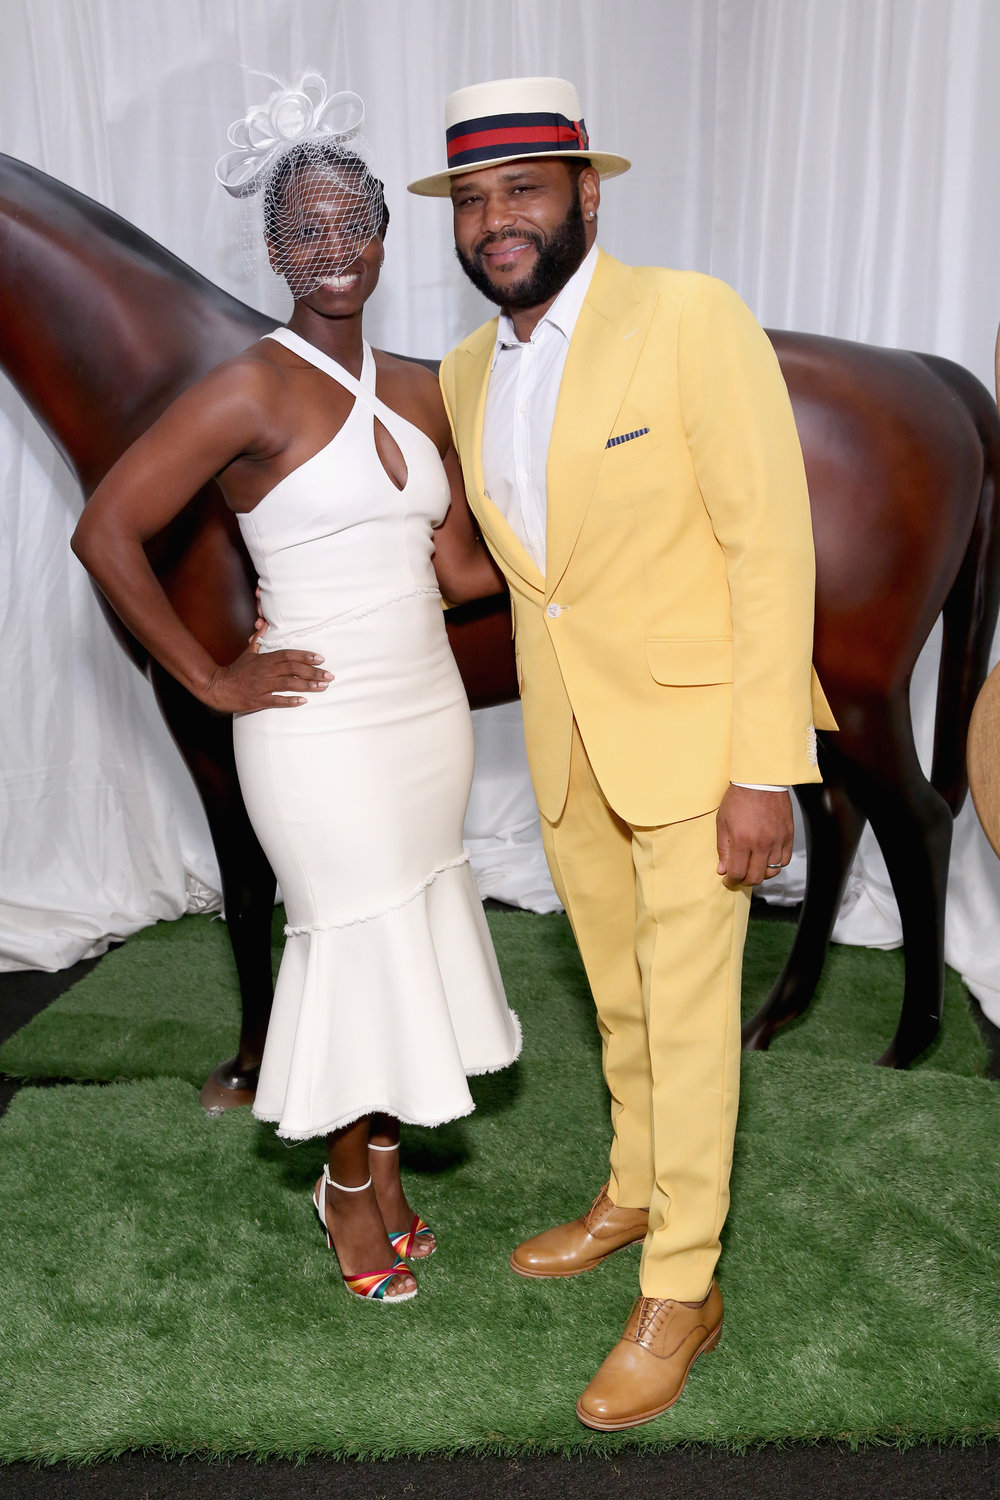 LOUISVILLE, KY - MAY 05:  Actor Anthony Anderson attends Kentucky Derby 144 on May 5, 2018 in Louisville, Kentucky.  (Photo by Robin Marchant/Getty Images for Churchill Downs) *** Local Caption *** Anthony Anderson